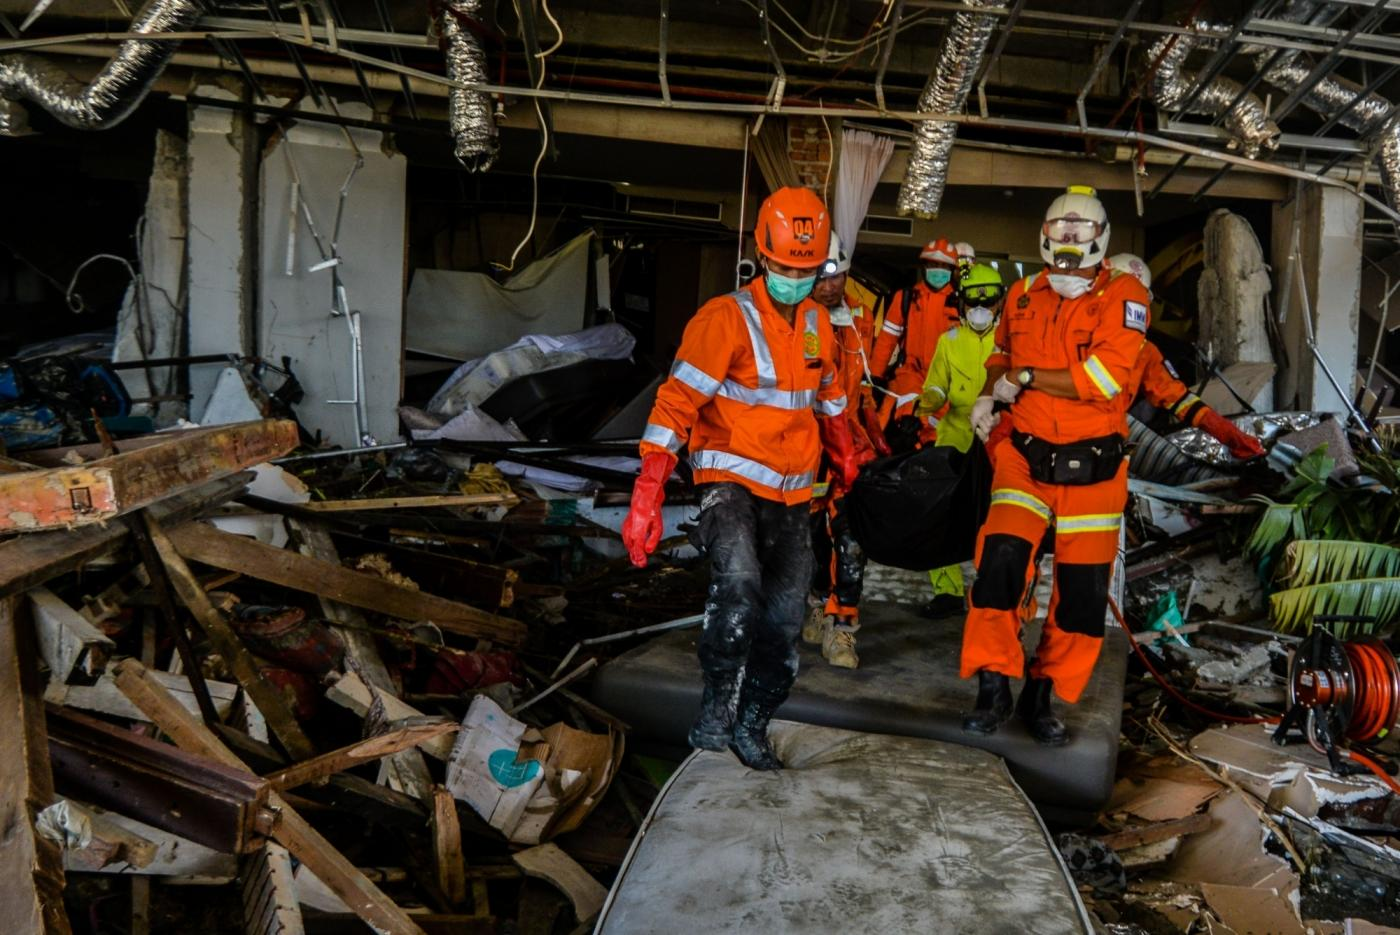 PALU, Oct. 3, 2018 (Xinhua) -- Search and Rescue team members search for victims at Balaroa, in Palu, Central Sulawesi, Indonesia. Oct. 3, 2018. The death toll from Indonesia's multiple earthquakes and an ensuing tsunami jumped to 1,407 on Wednesday, the country's disaster management agency said. (Xinhua/Iqbal Lubis/IANS) by .